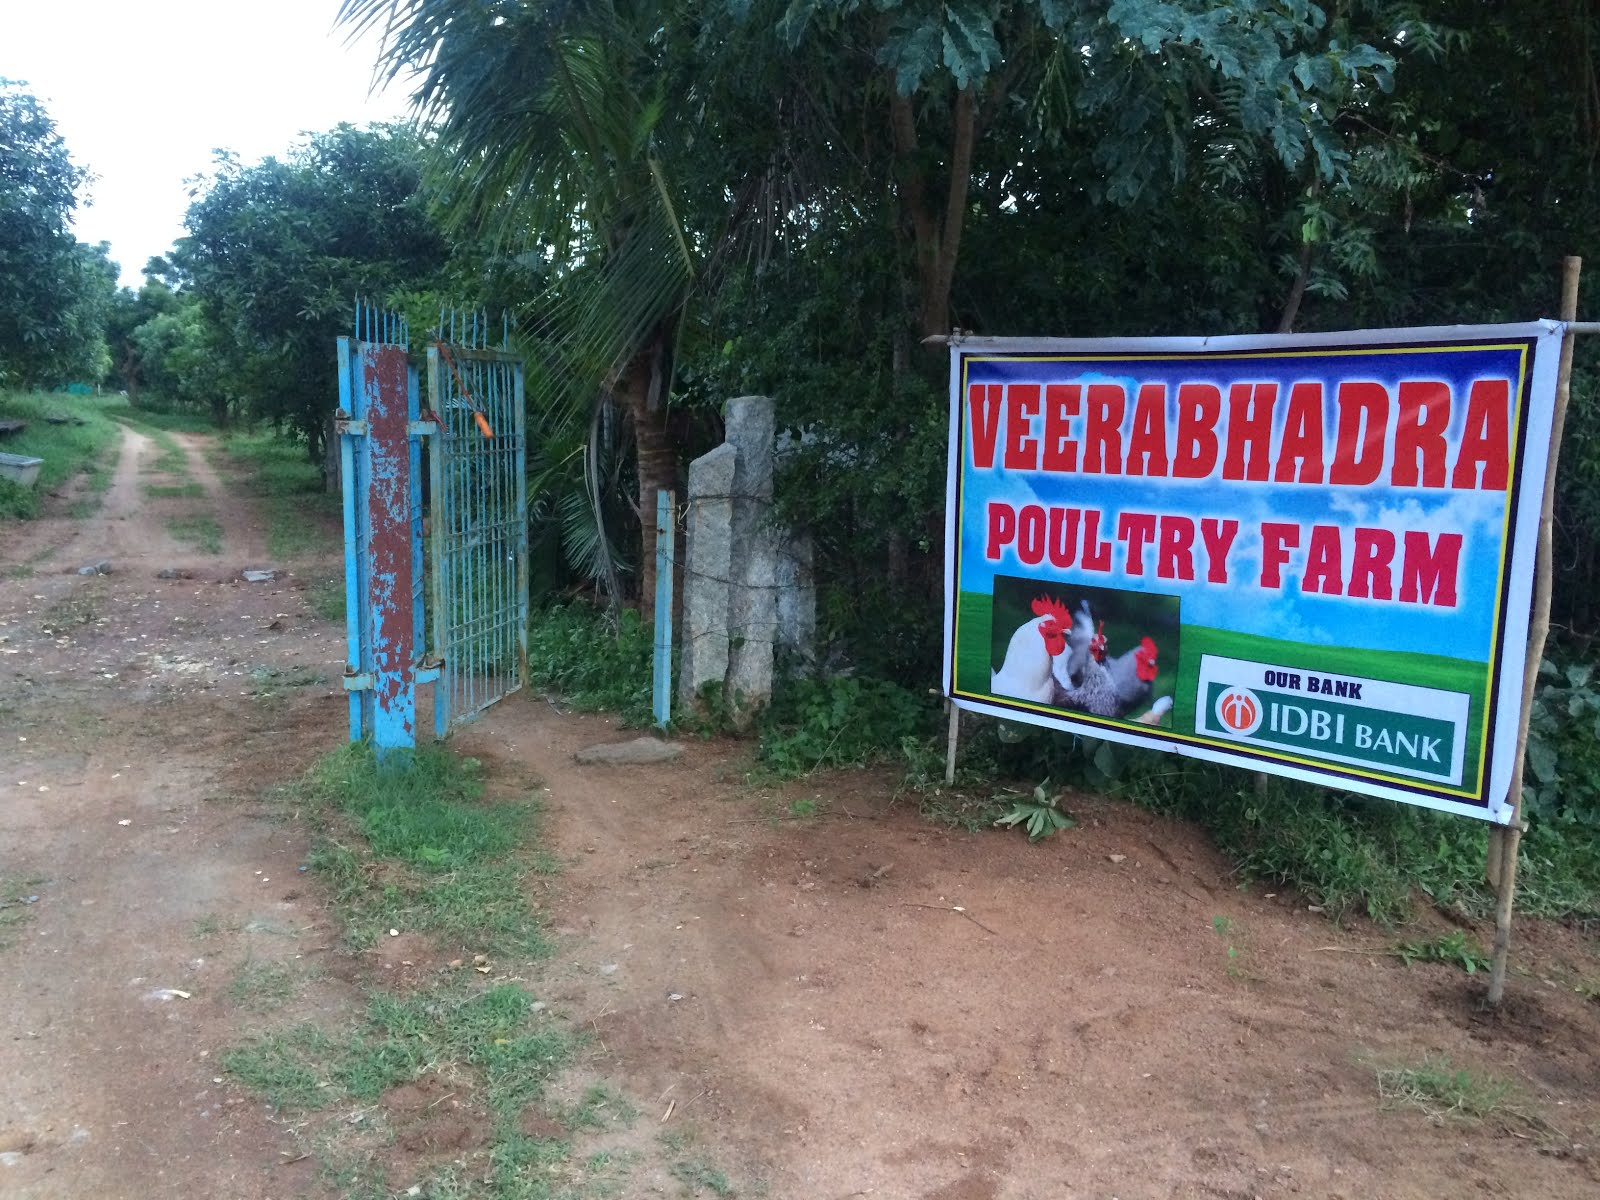 Veerabadra Poultry Farms: MODEL PROJECT REPORT for Broiler